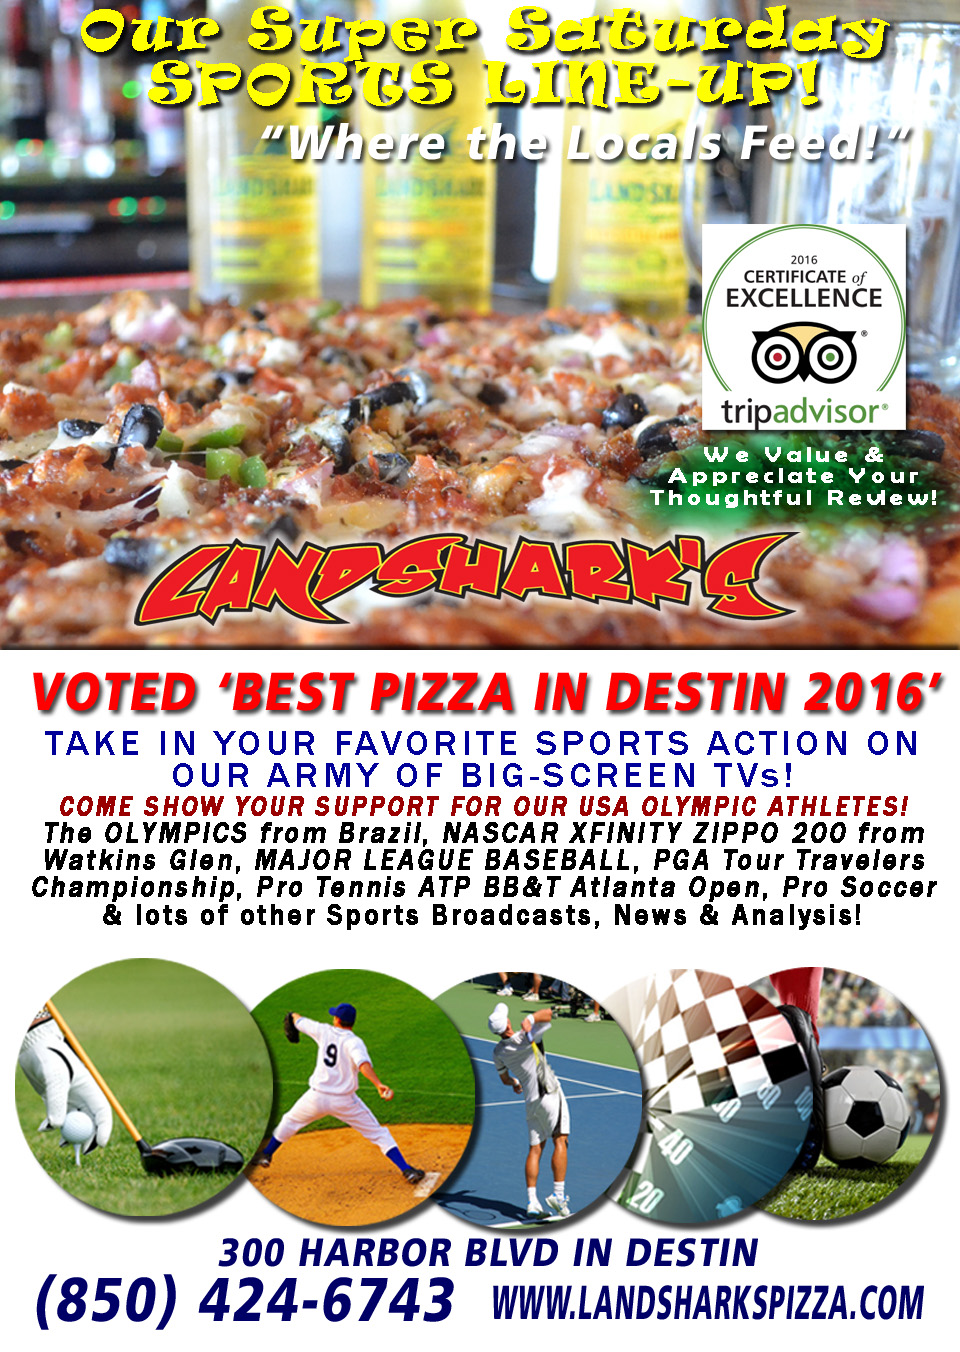 Sports TV in Destin FL at Landsharks Pizza